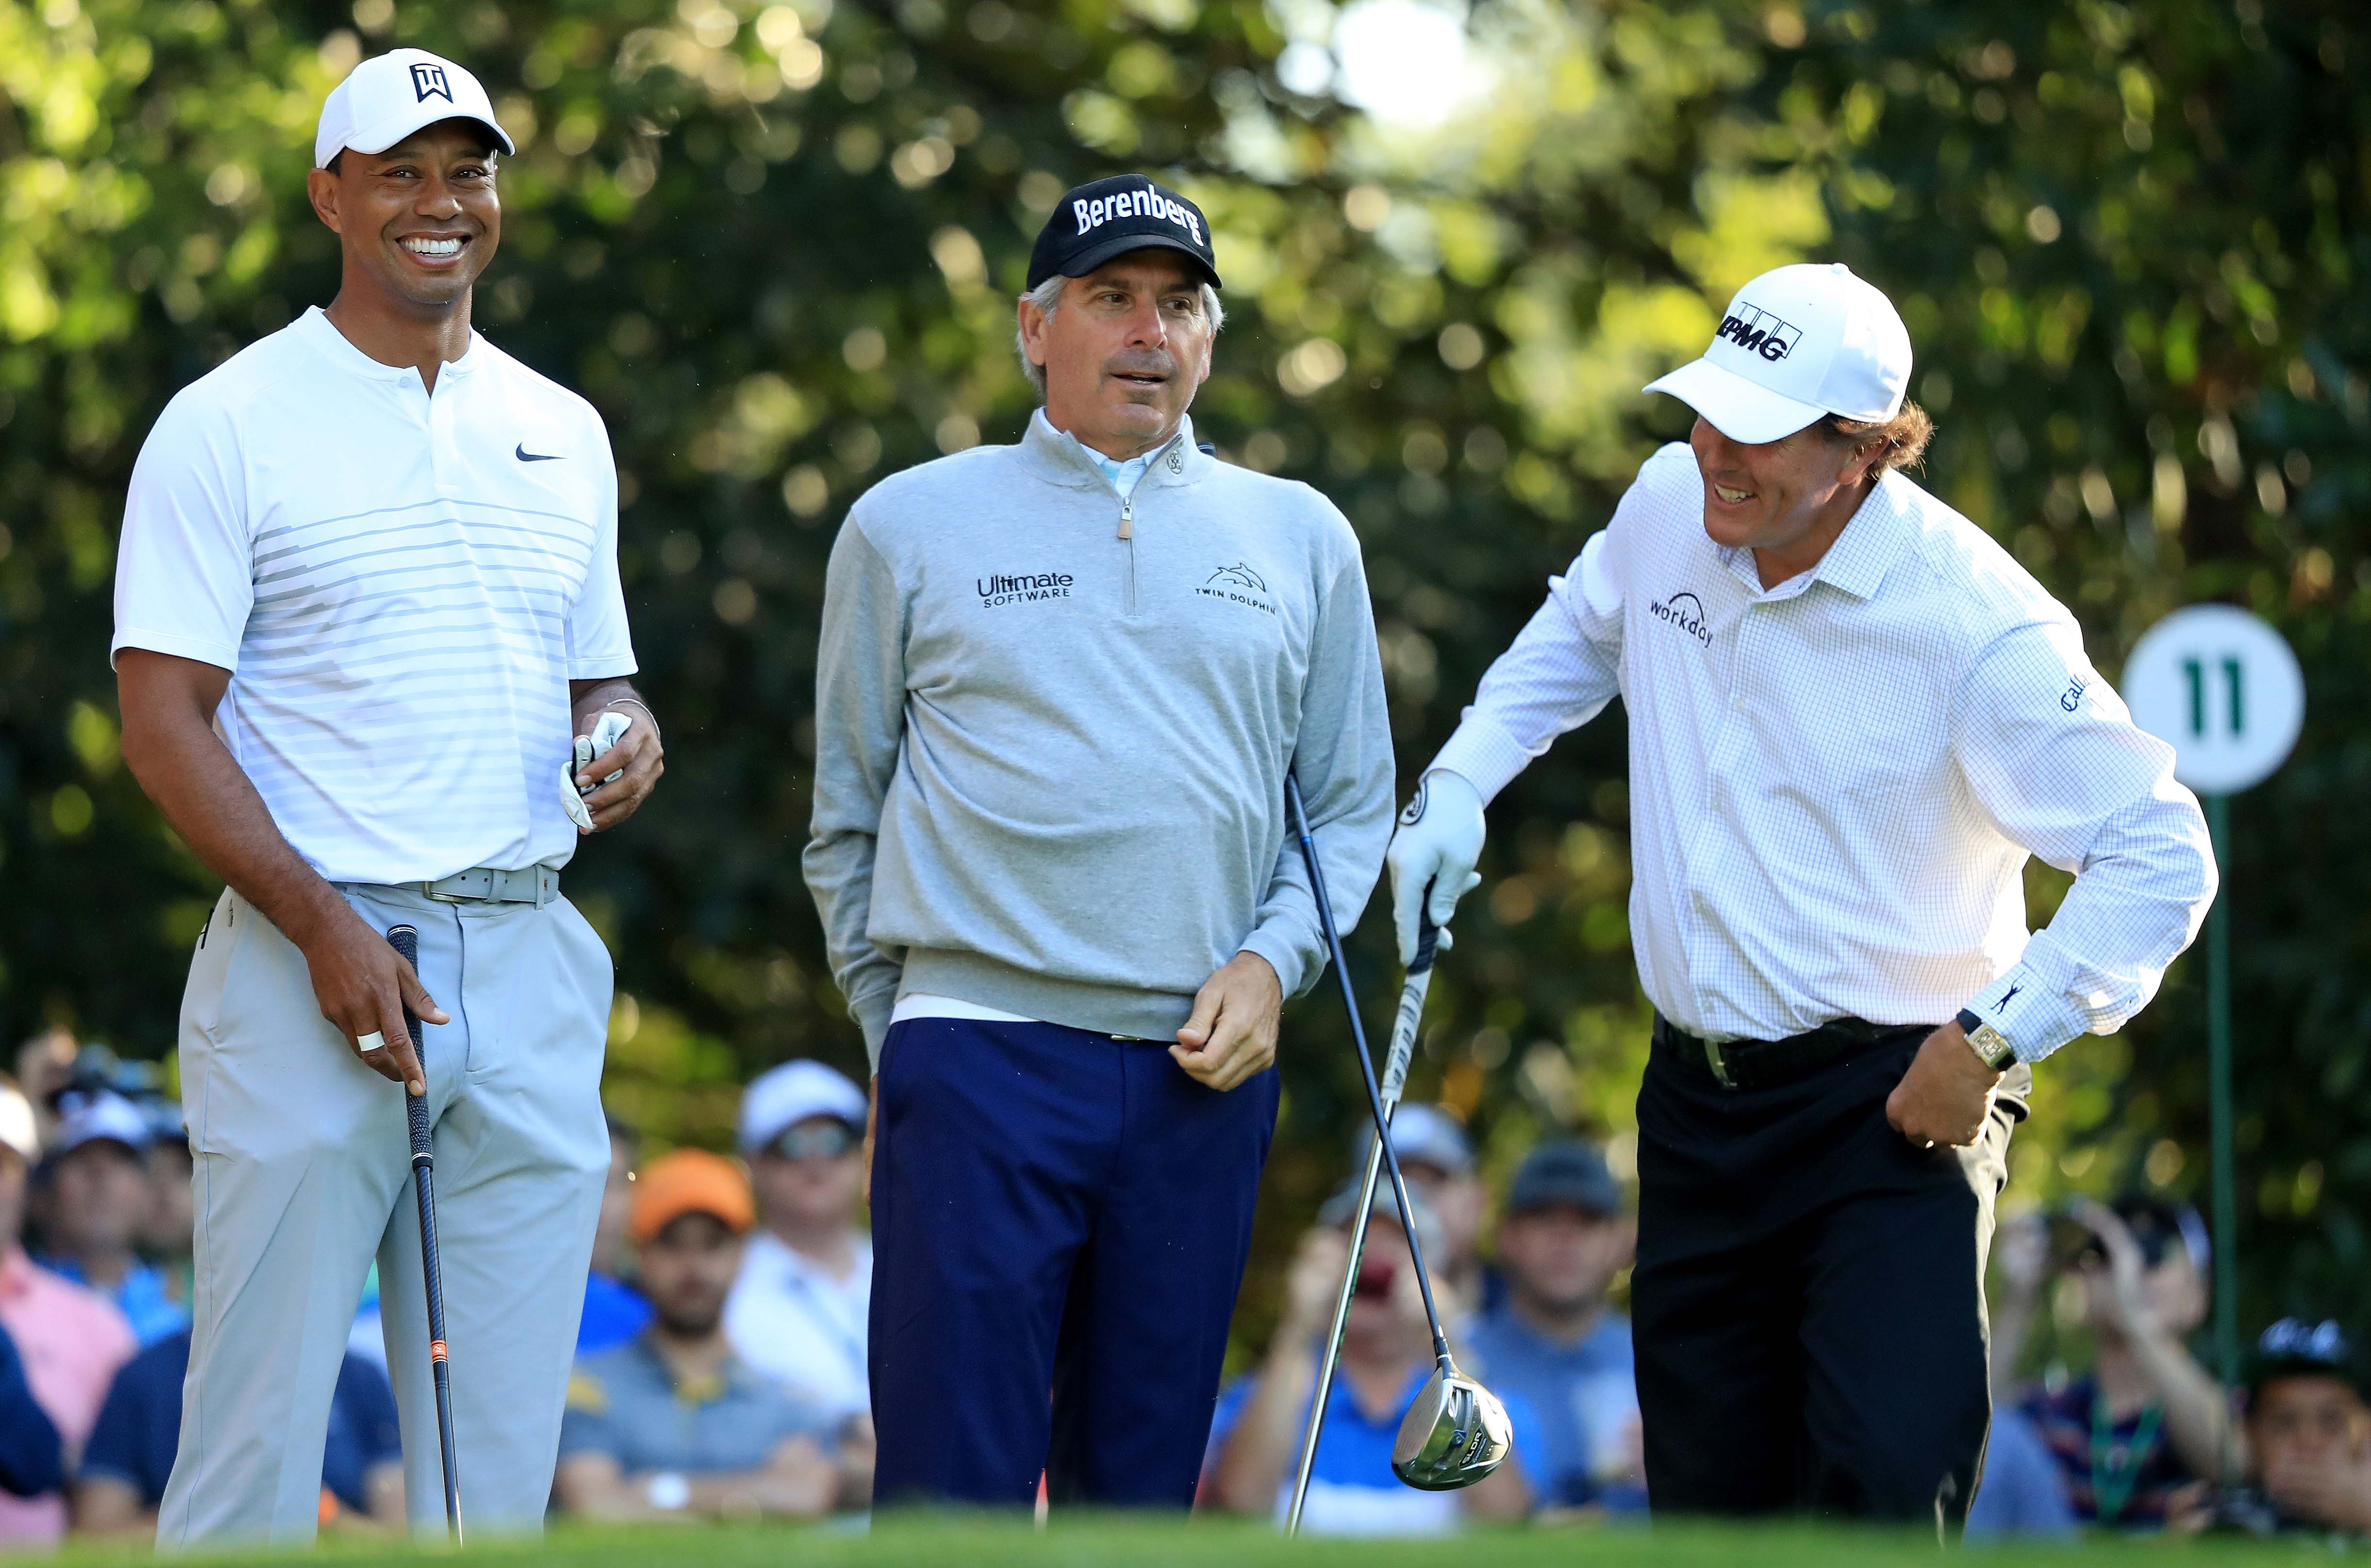 Tiger Woods, Fred Couples and Phil Mickelson